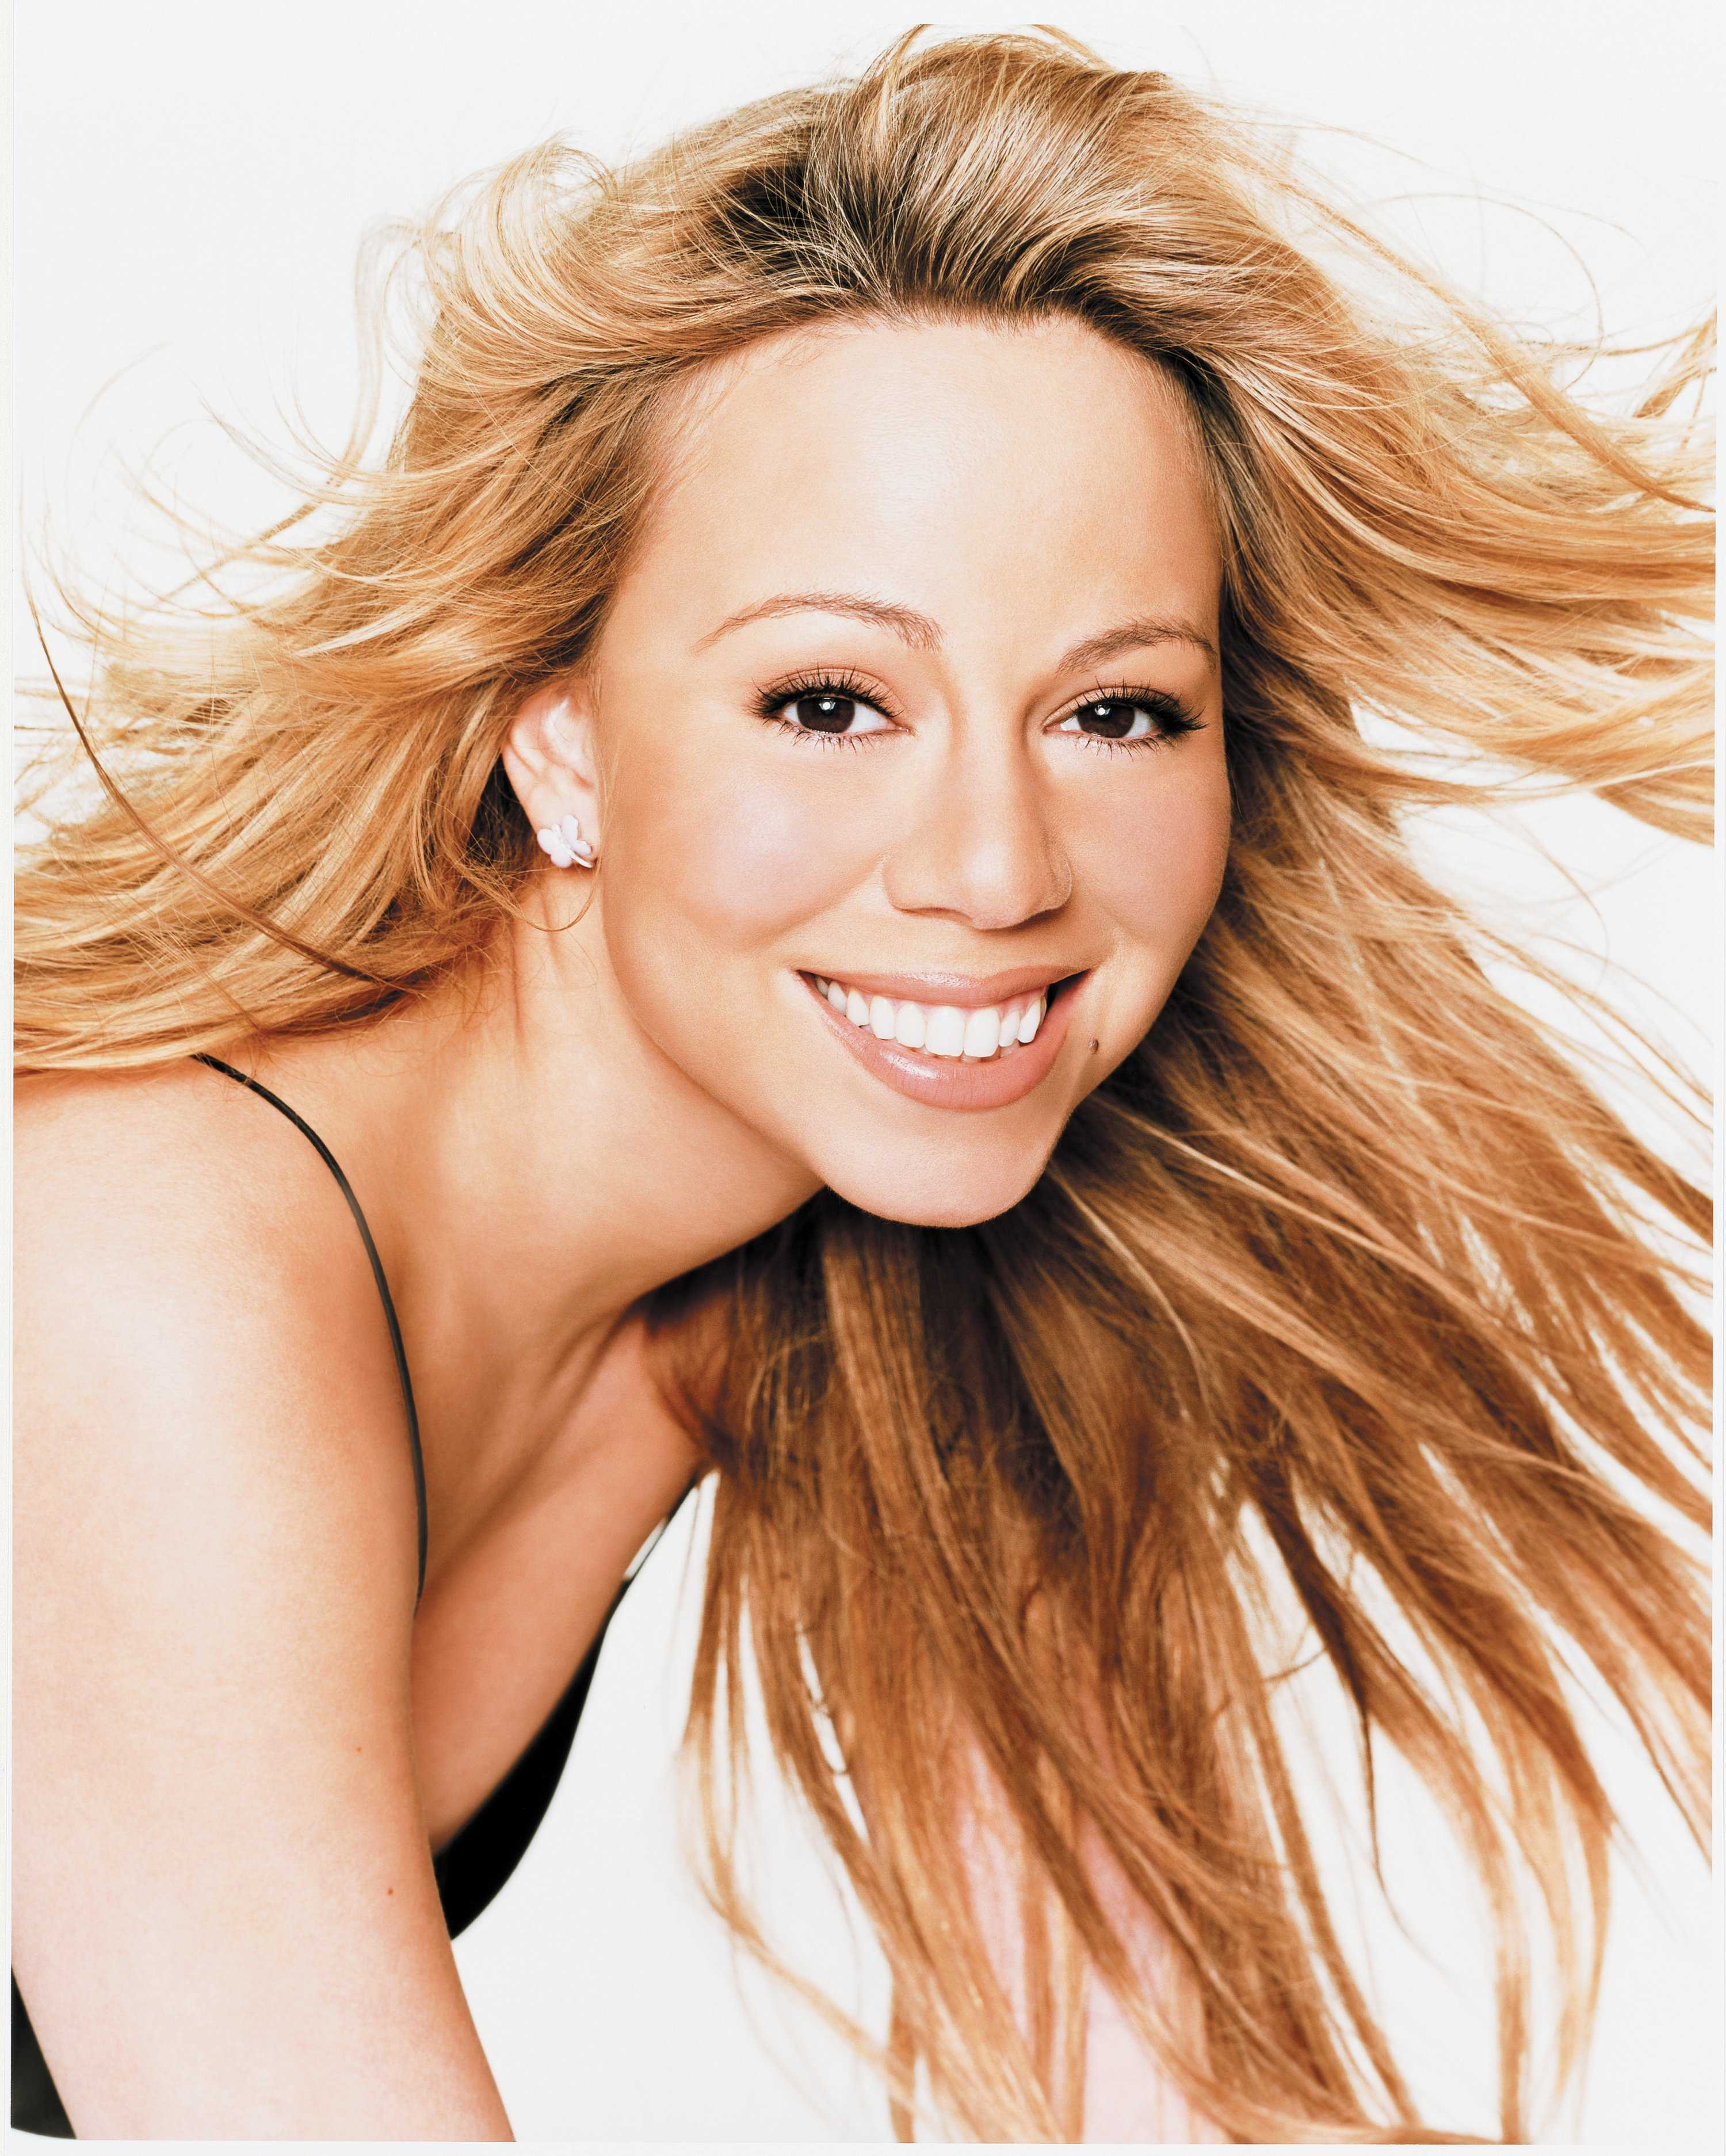 Mariah Carey HD Wallpapers And Pictures | Hd Wallpapers